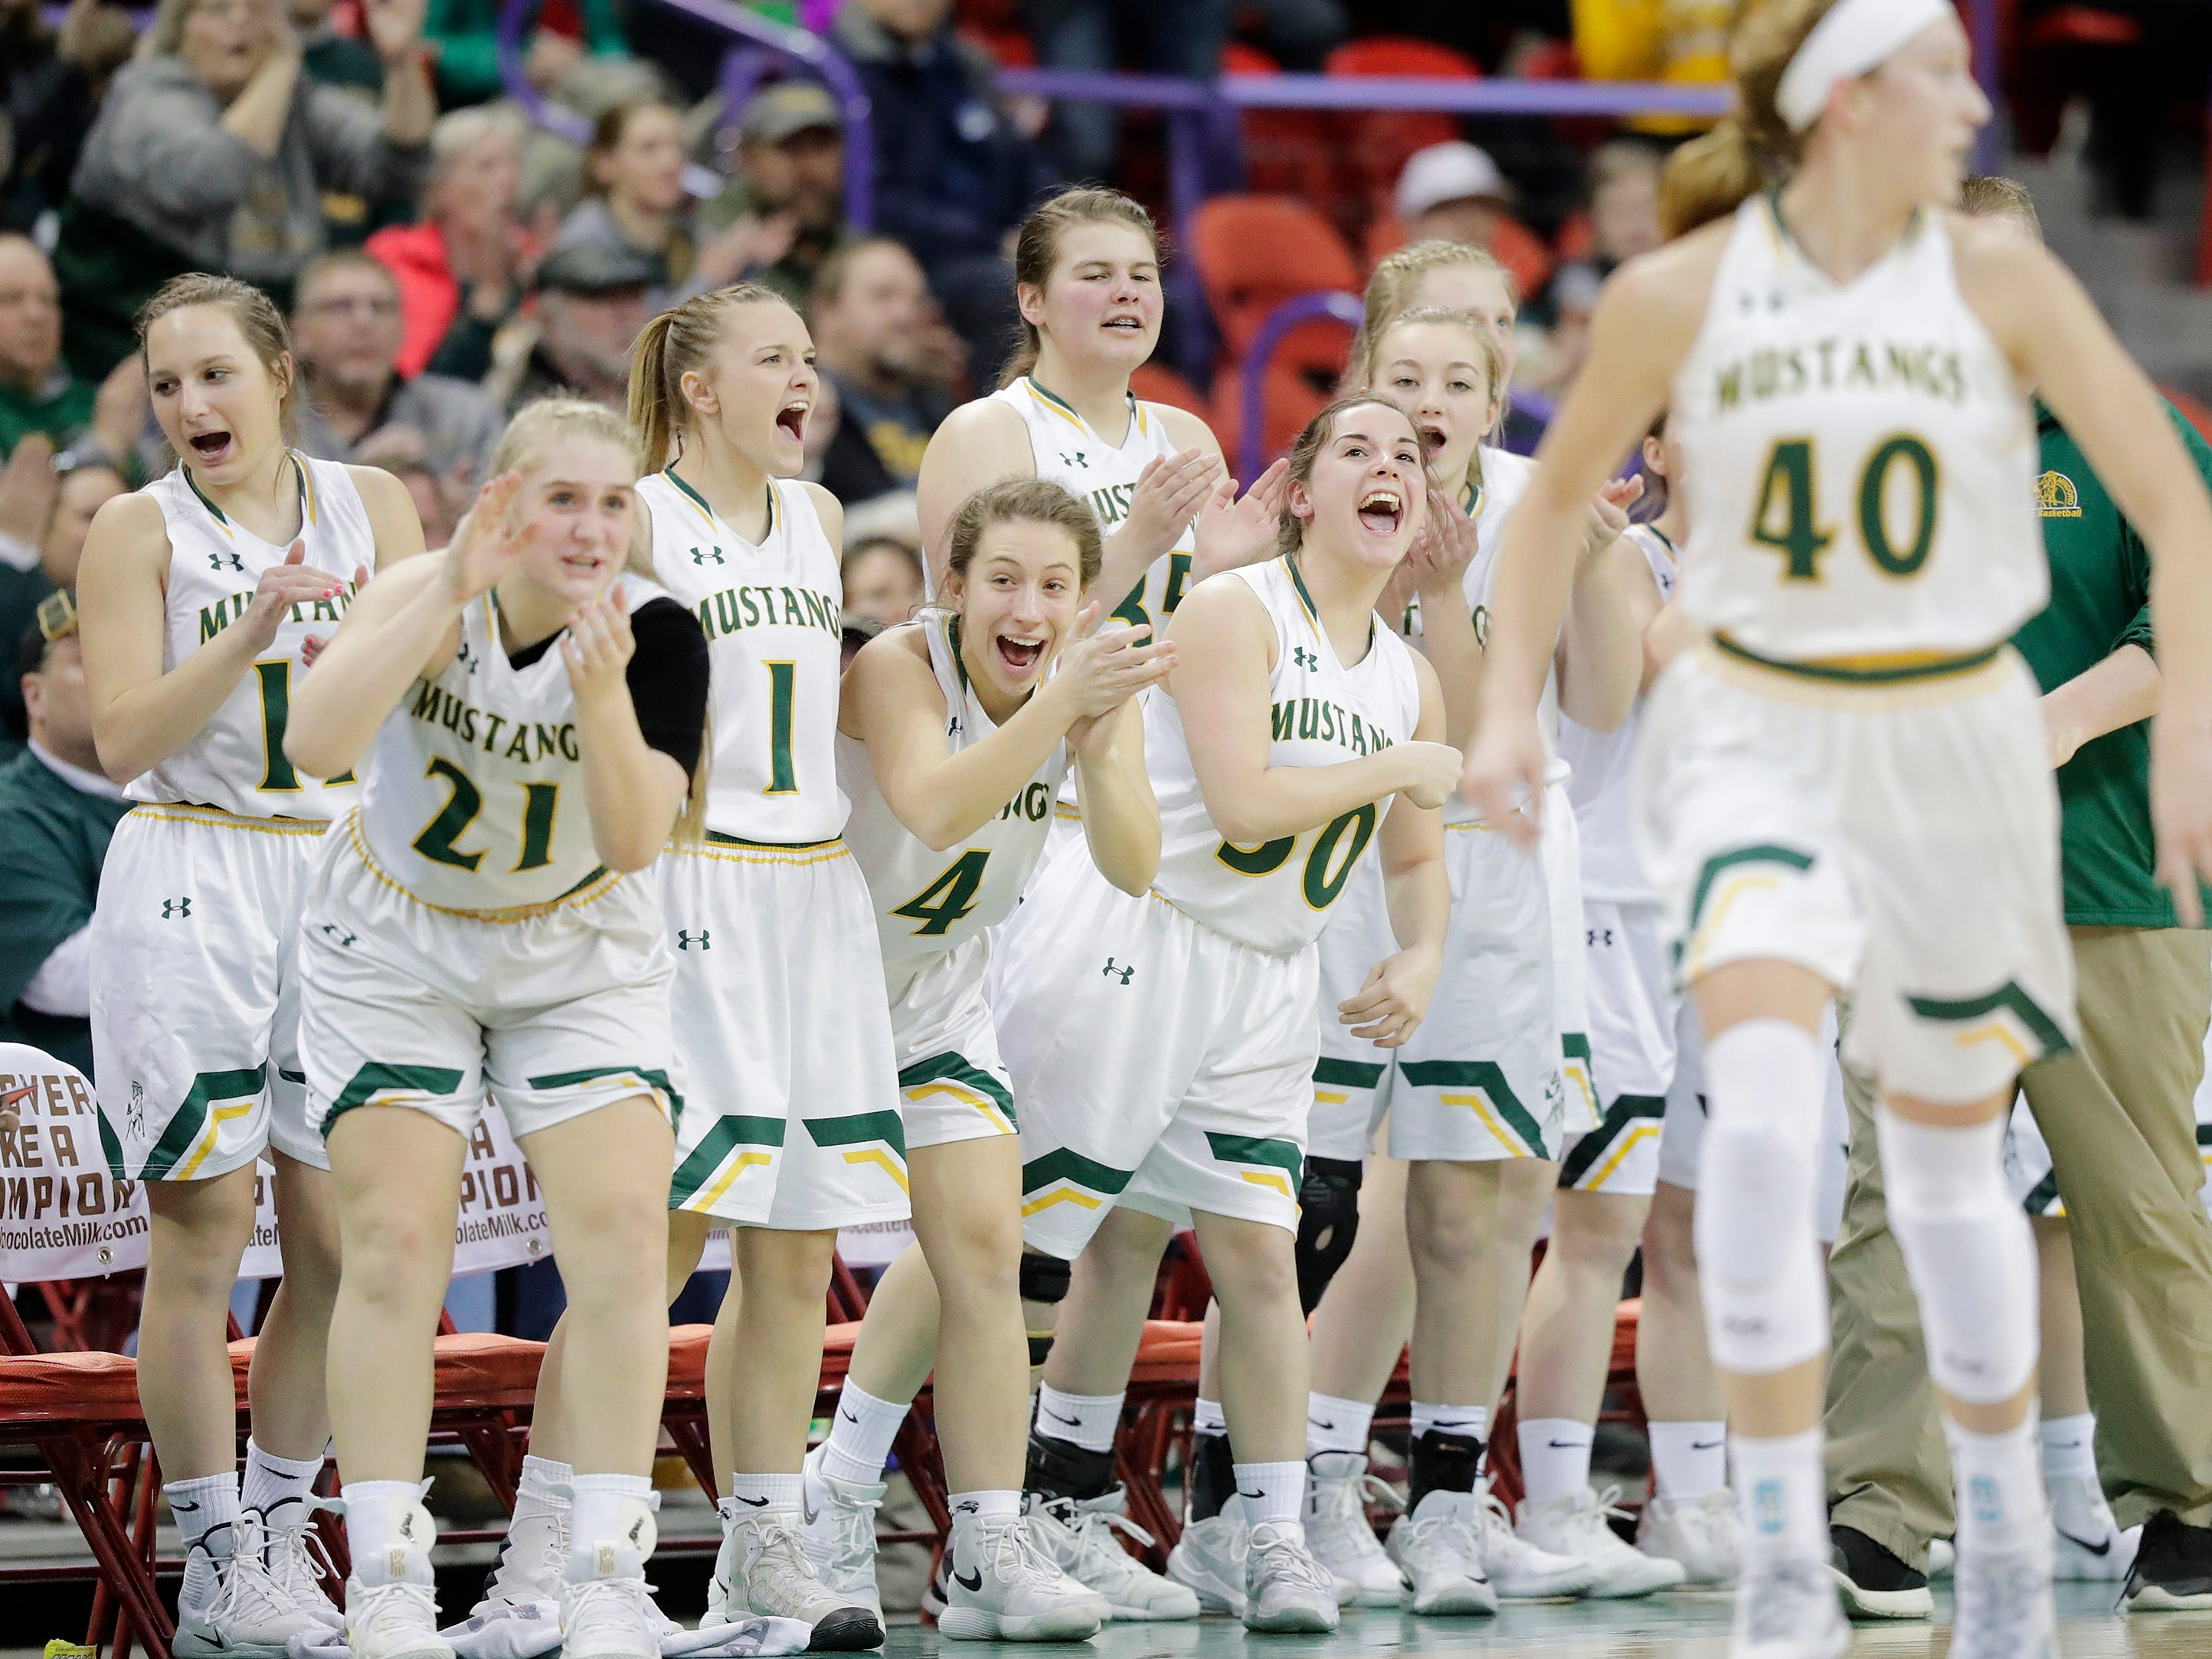 Melrose-Mindoro players celebrate a three against Colby in a Division 3 semifinal at the WIAA state girls basketball tournament at the Resch Center on Thursday, March 7, 2019, in Ashwaubenon, Wis.